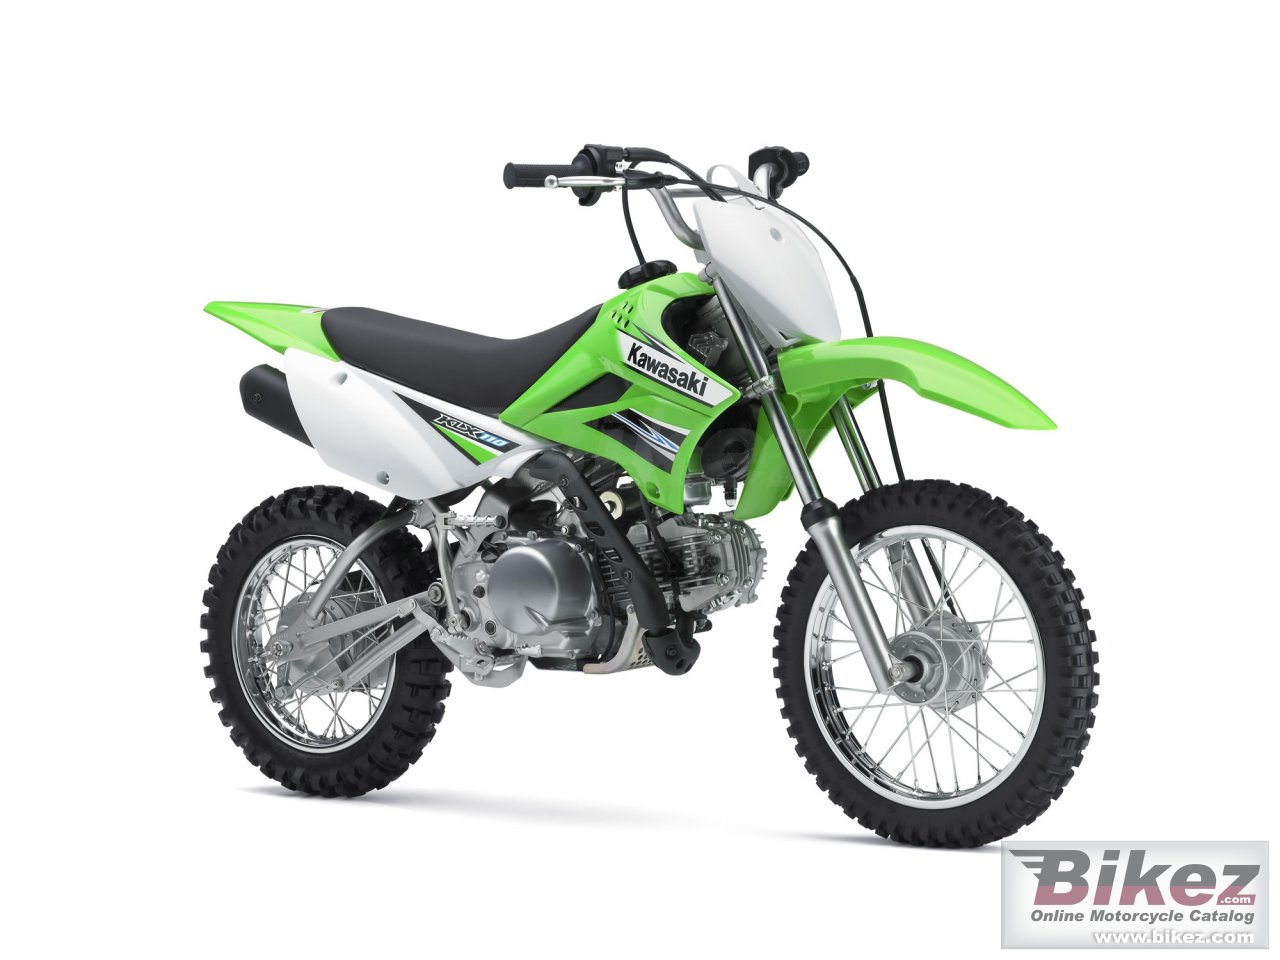 Big Kawasaki klx 110 picture and wallpaper from Bikez.com